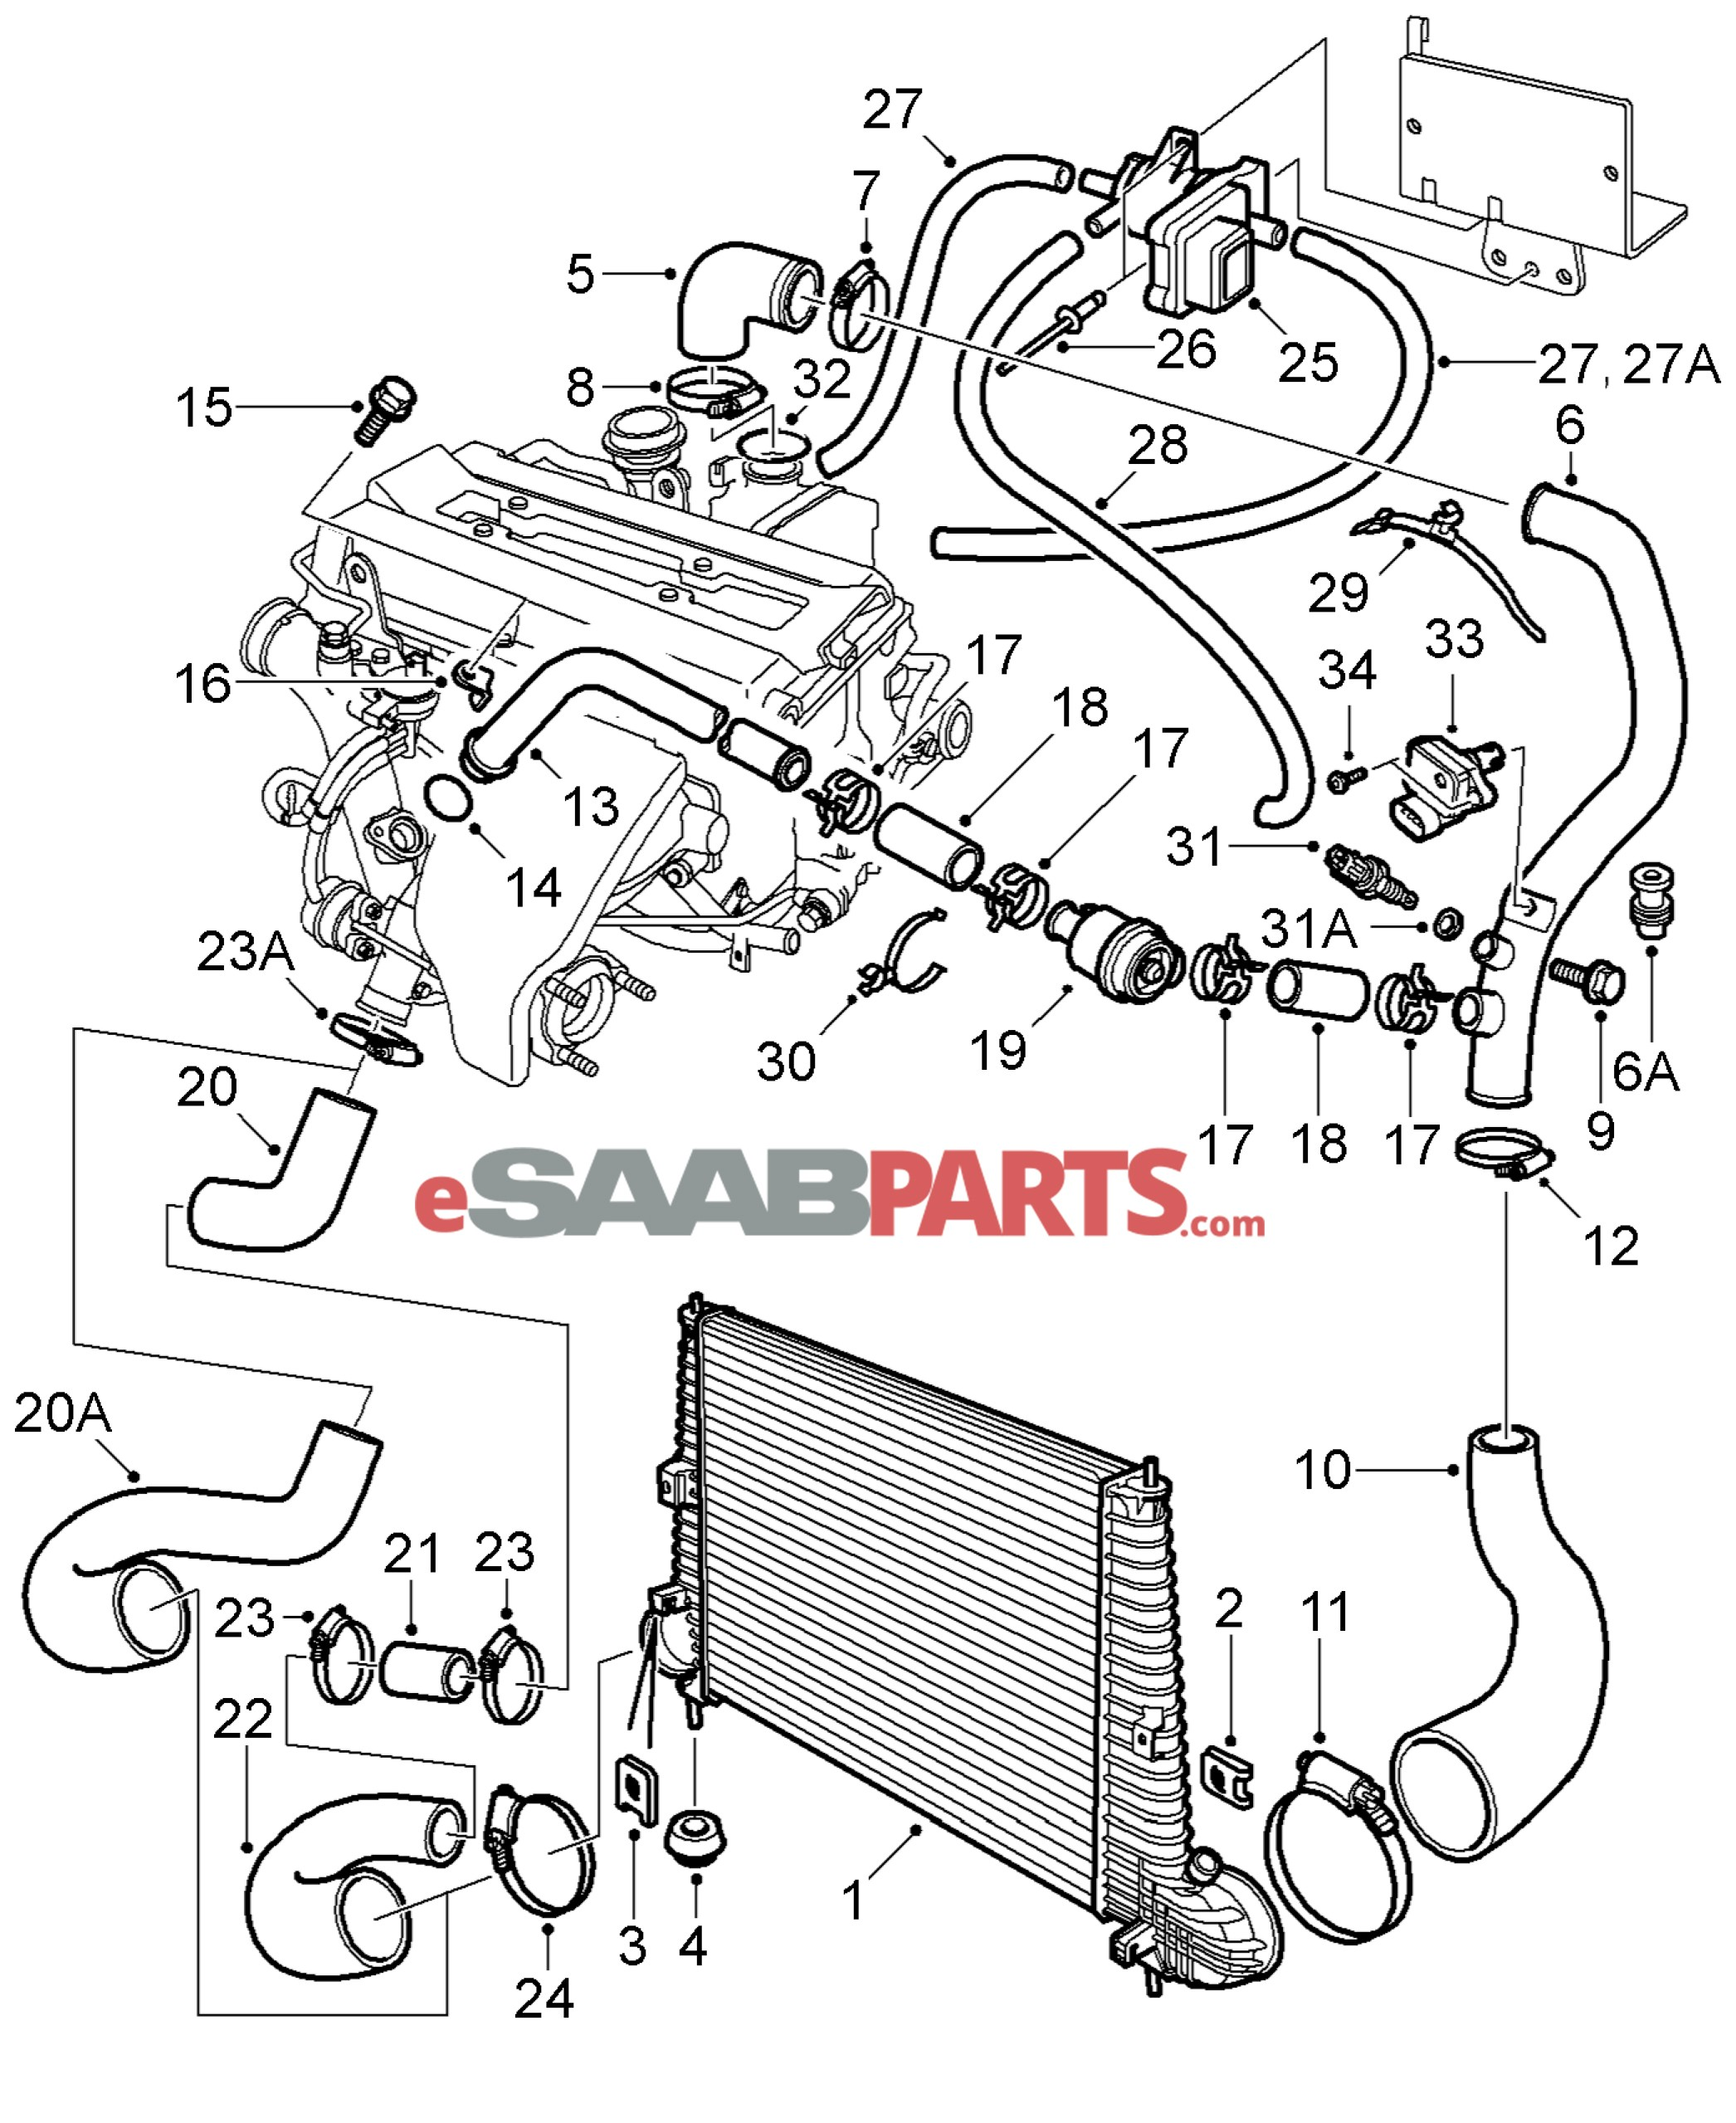 Wiring Diagram For Saab